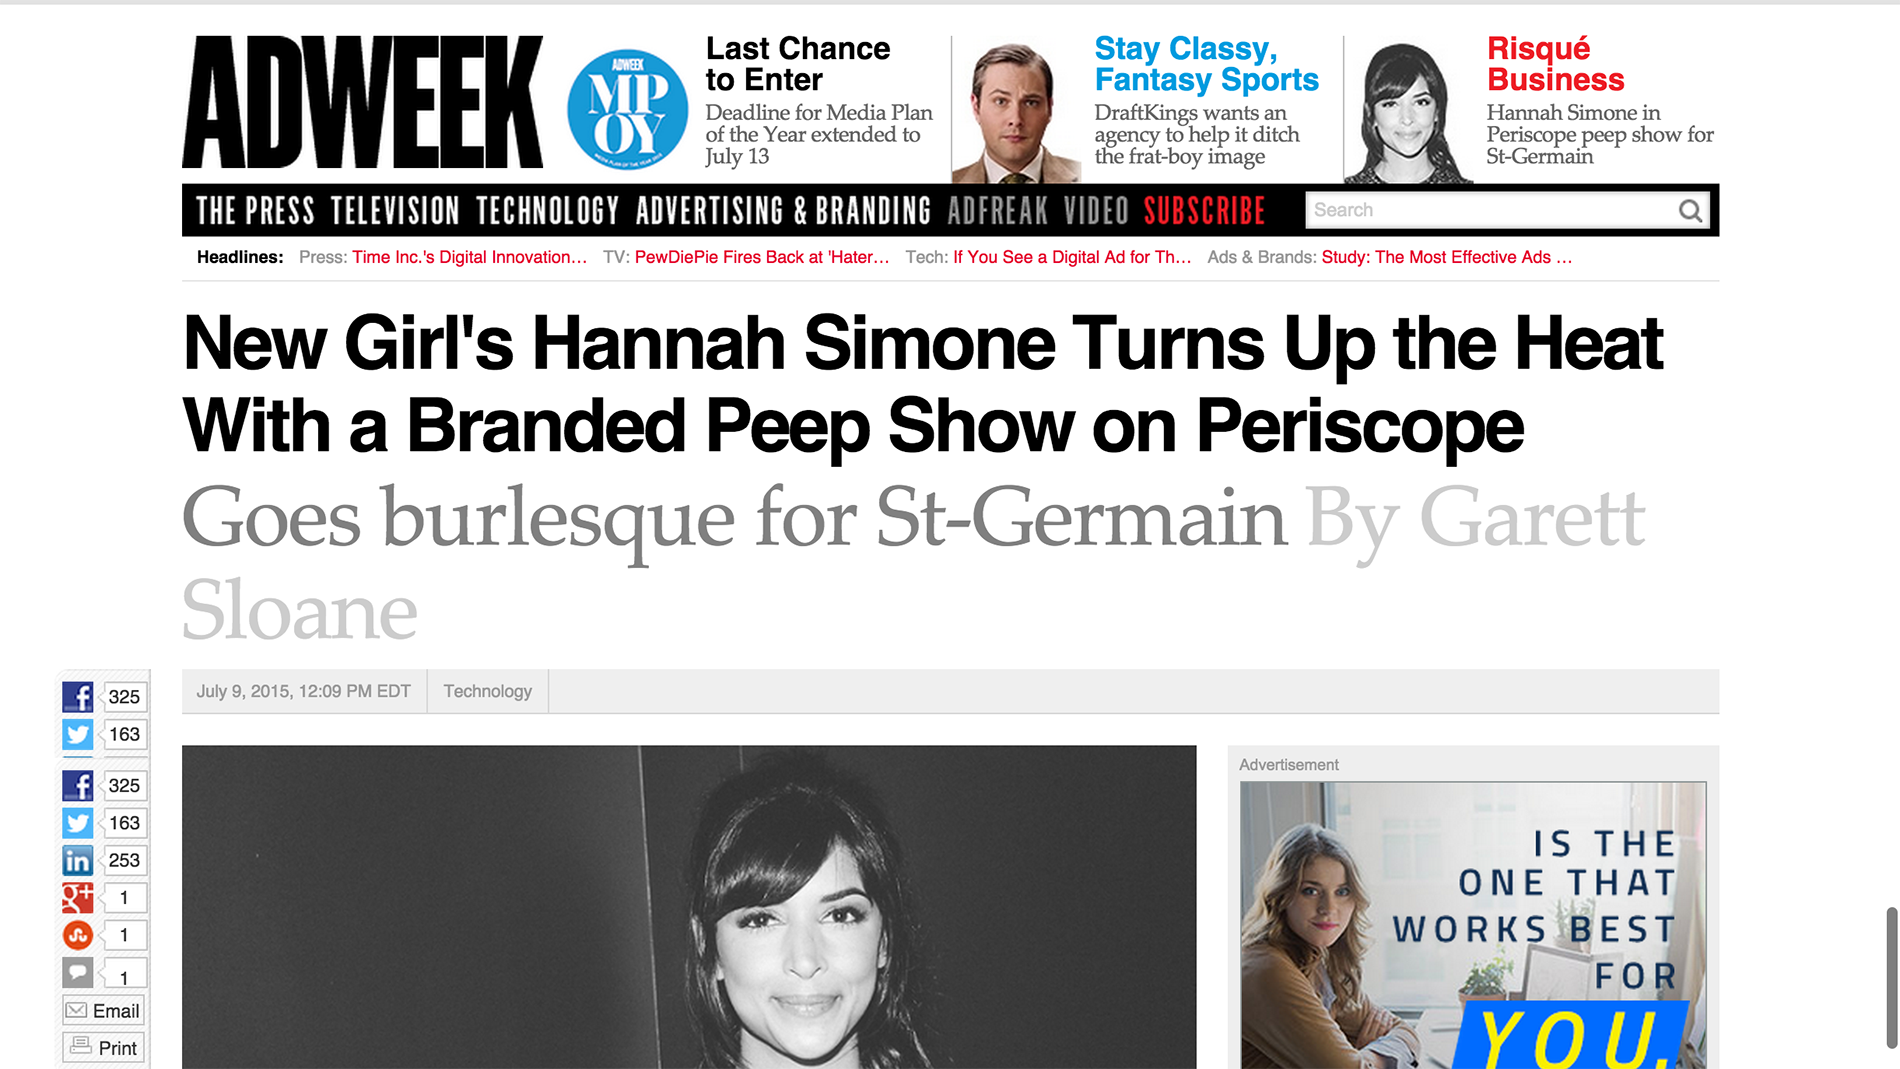 ADWeek_New Girl s Hannah Simone Turns Up the Heat With a Branded Peep Show on Periscope   Adweek.png